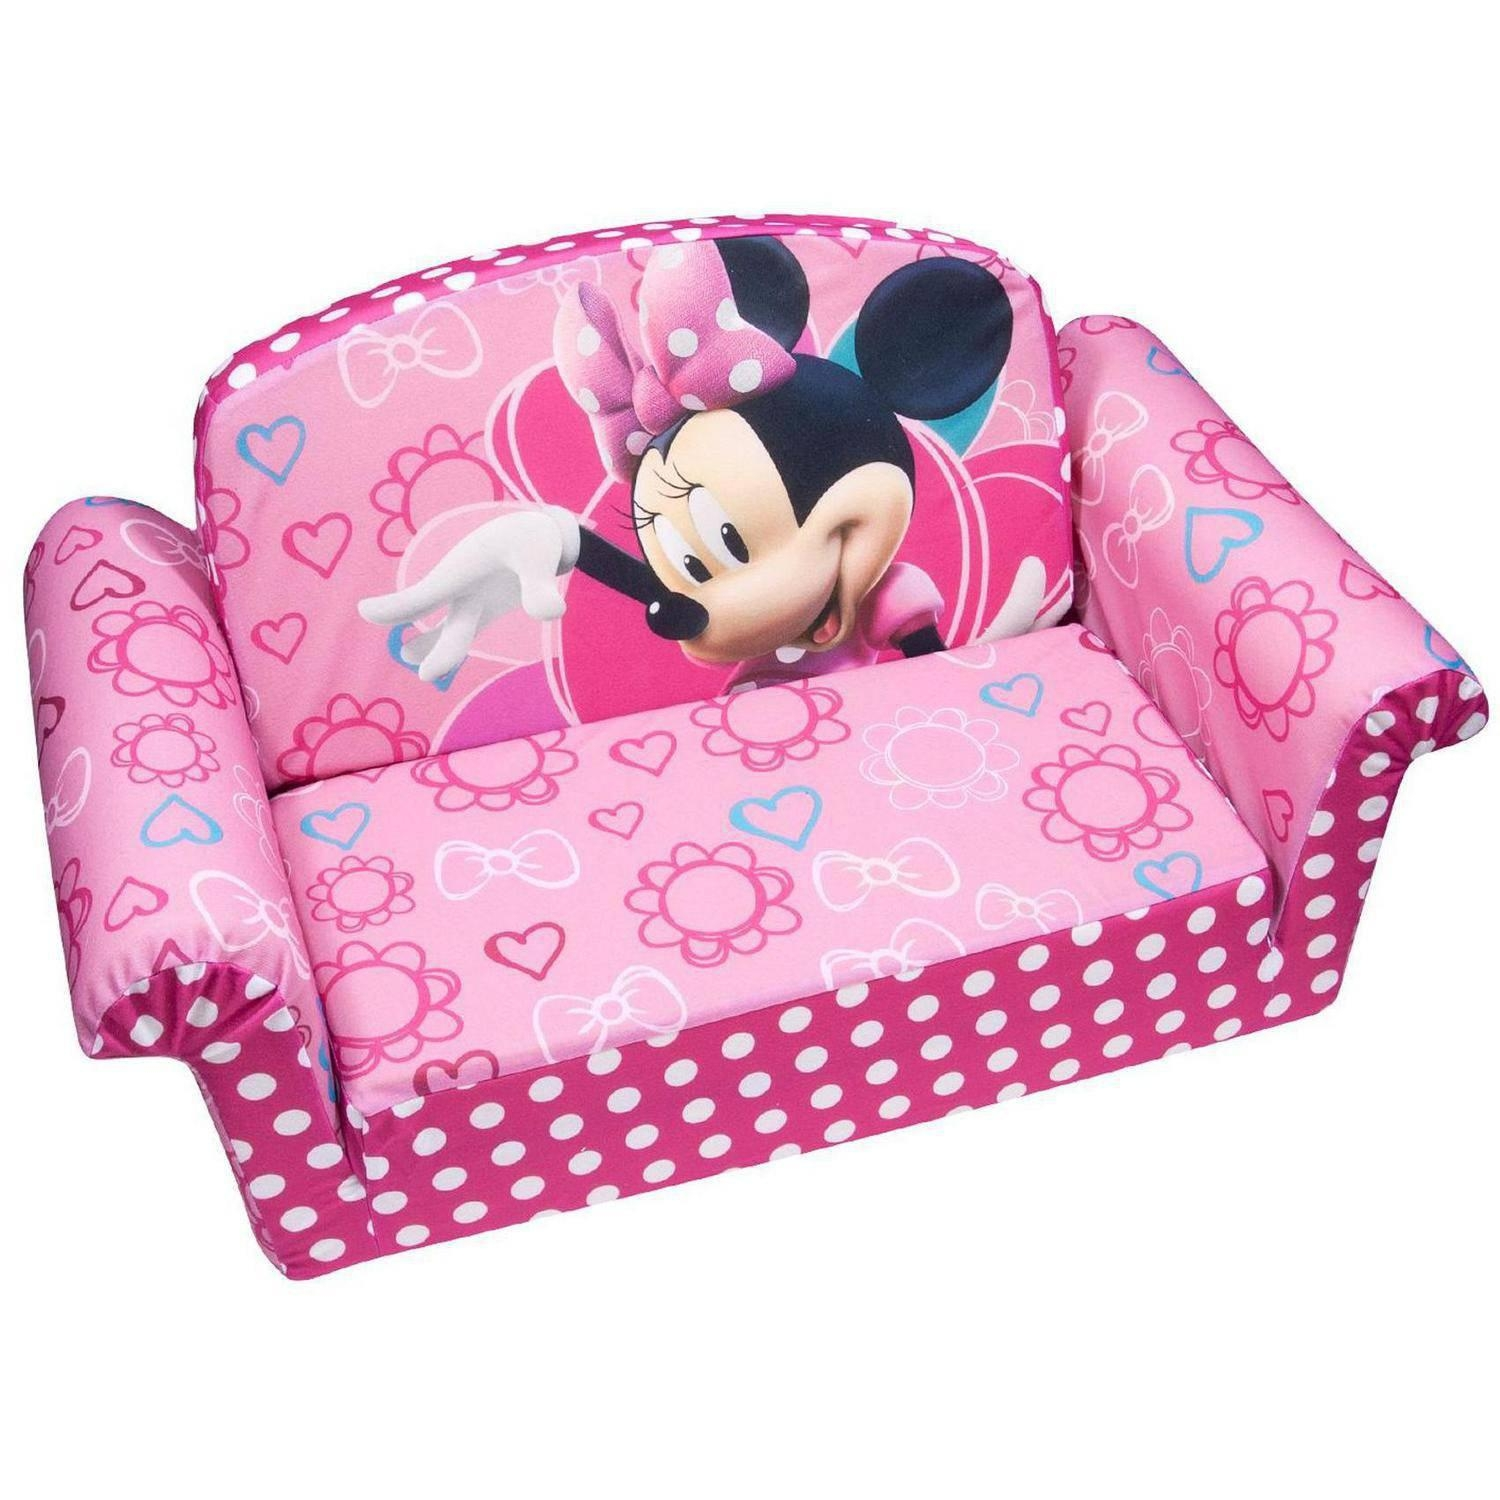 Marshmallow Furniture Flip Open Sofa, Teenage Mutant Ninja Turtles Intended For Toddler Sofa Chairs (View 11 of 20)